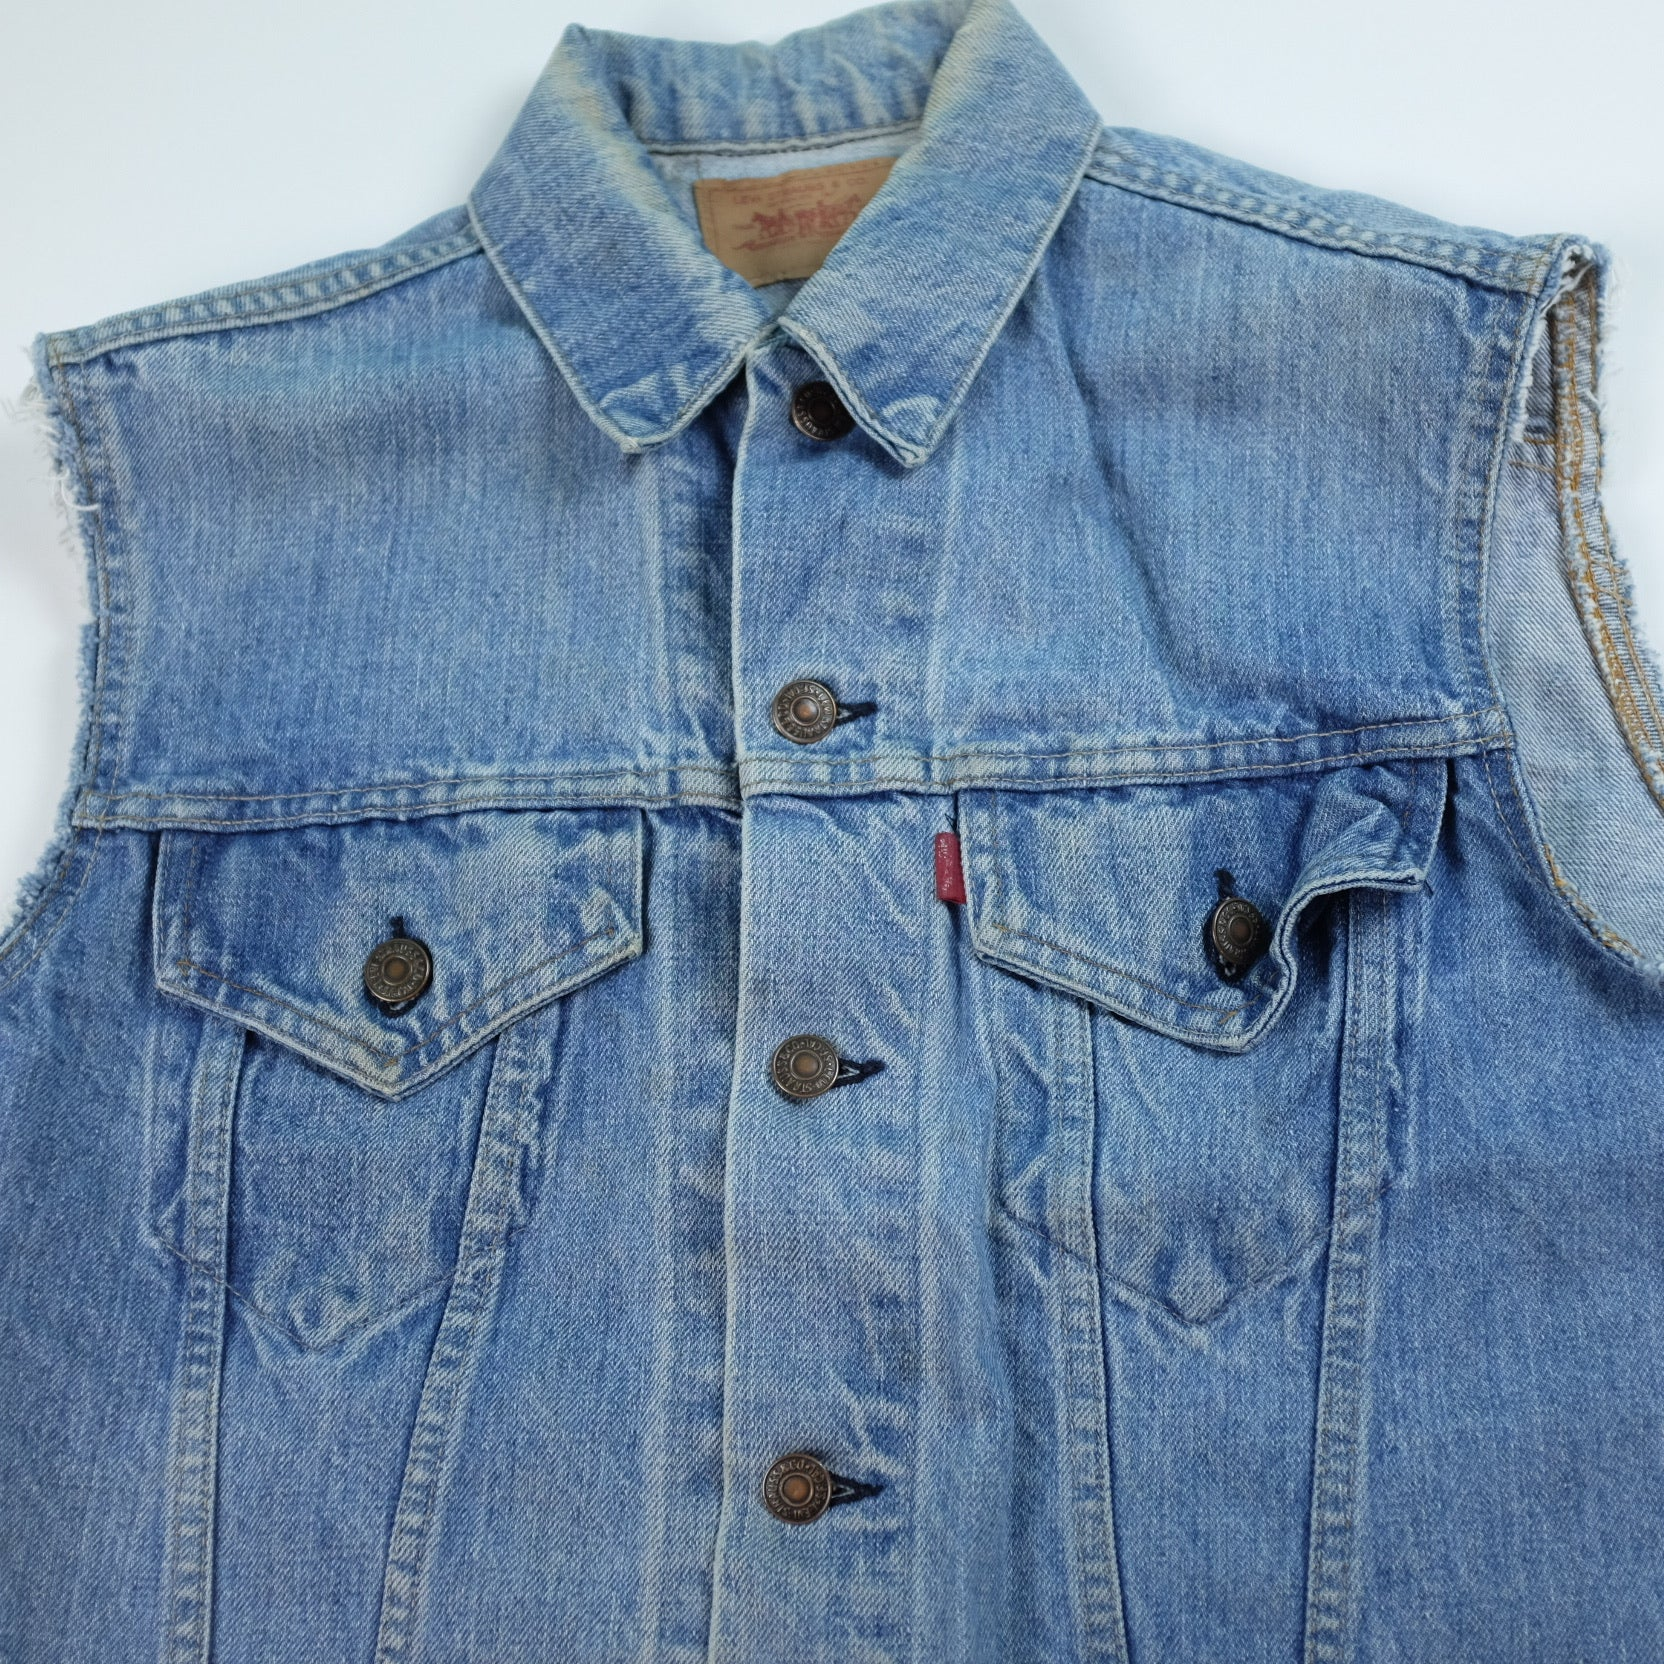 Levi's Big E Cut Off Denim Jean Jacket - S